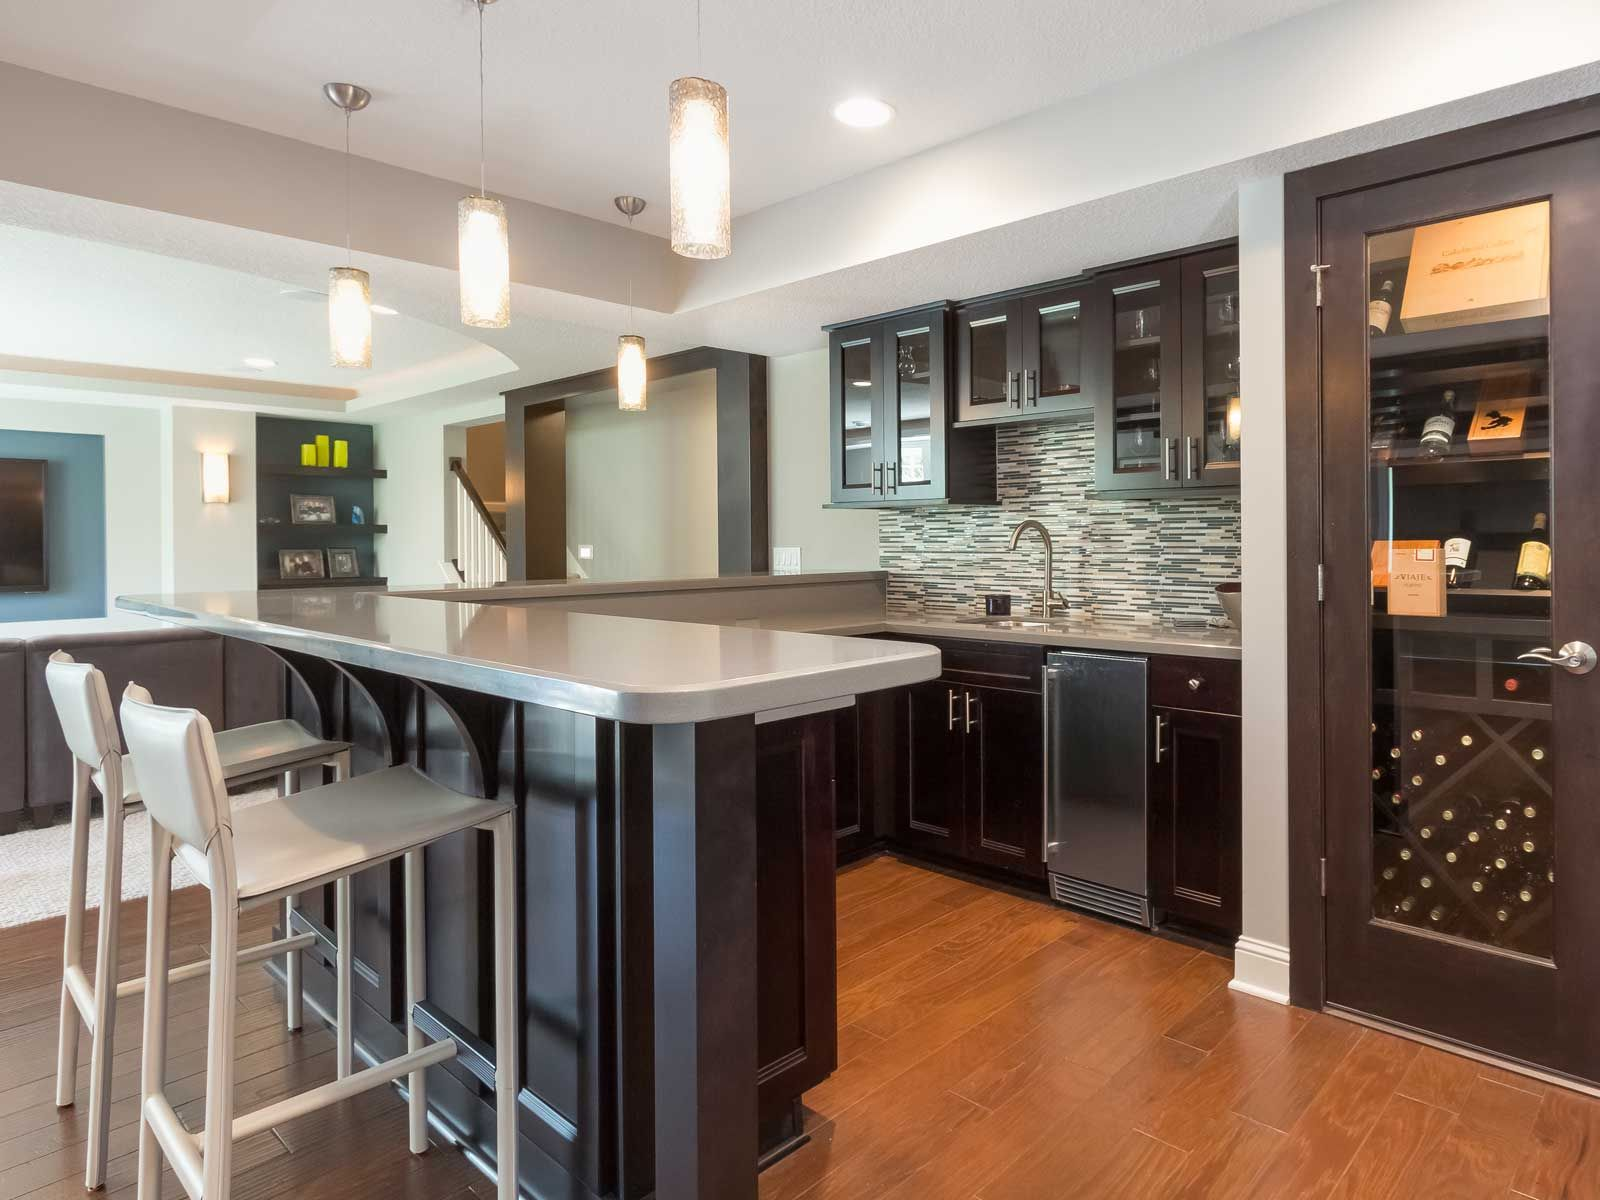 Gentil Make Your Finished Basement Amazing! We Have Gathered 25 Inspiring Finished  Basement Designs To Inspire You To Create The Basement Of Your Dreams!